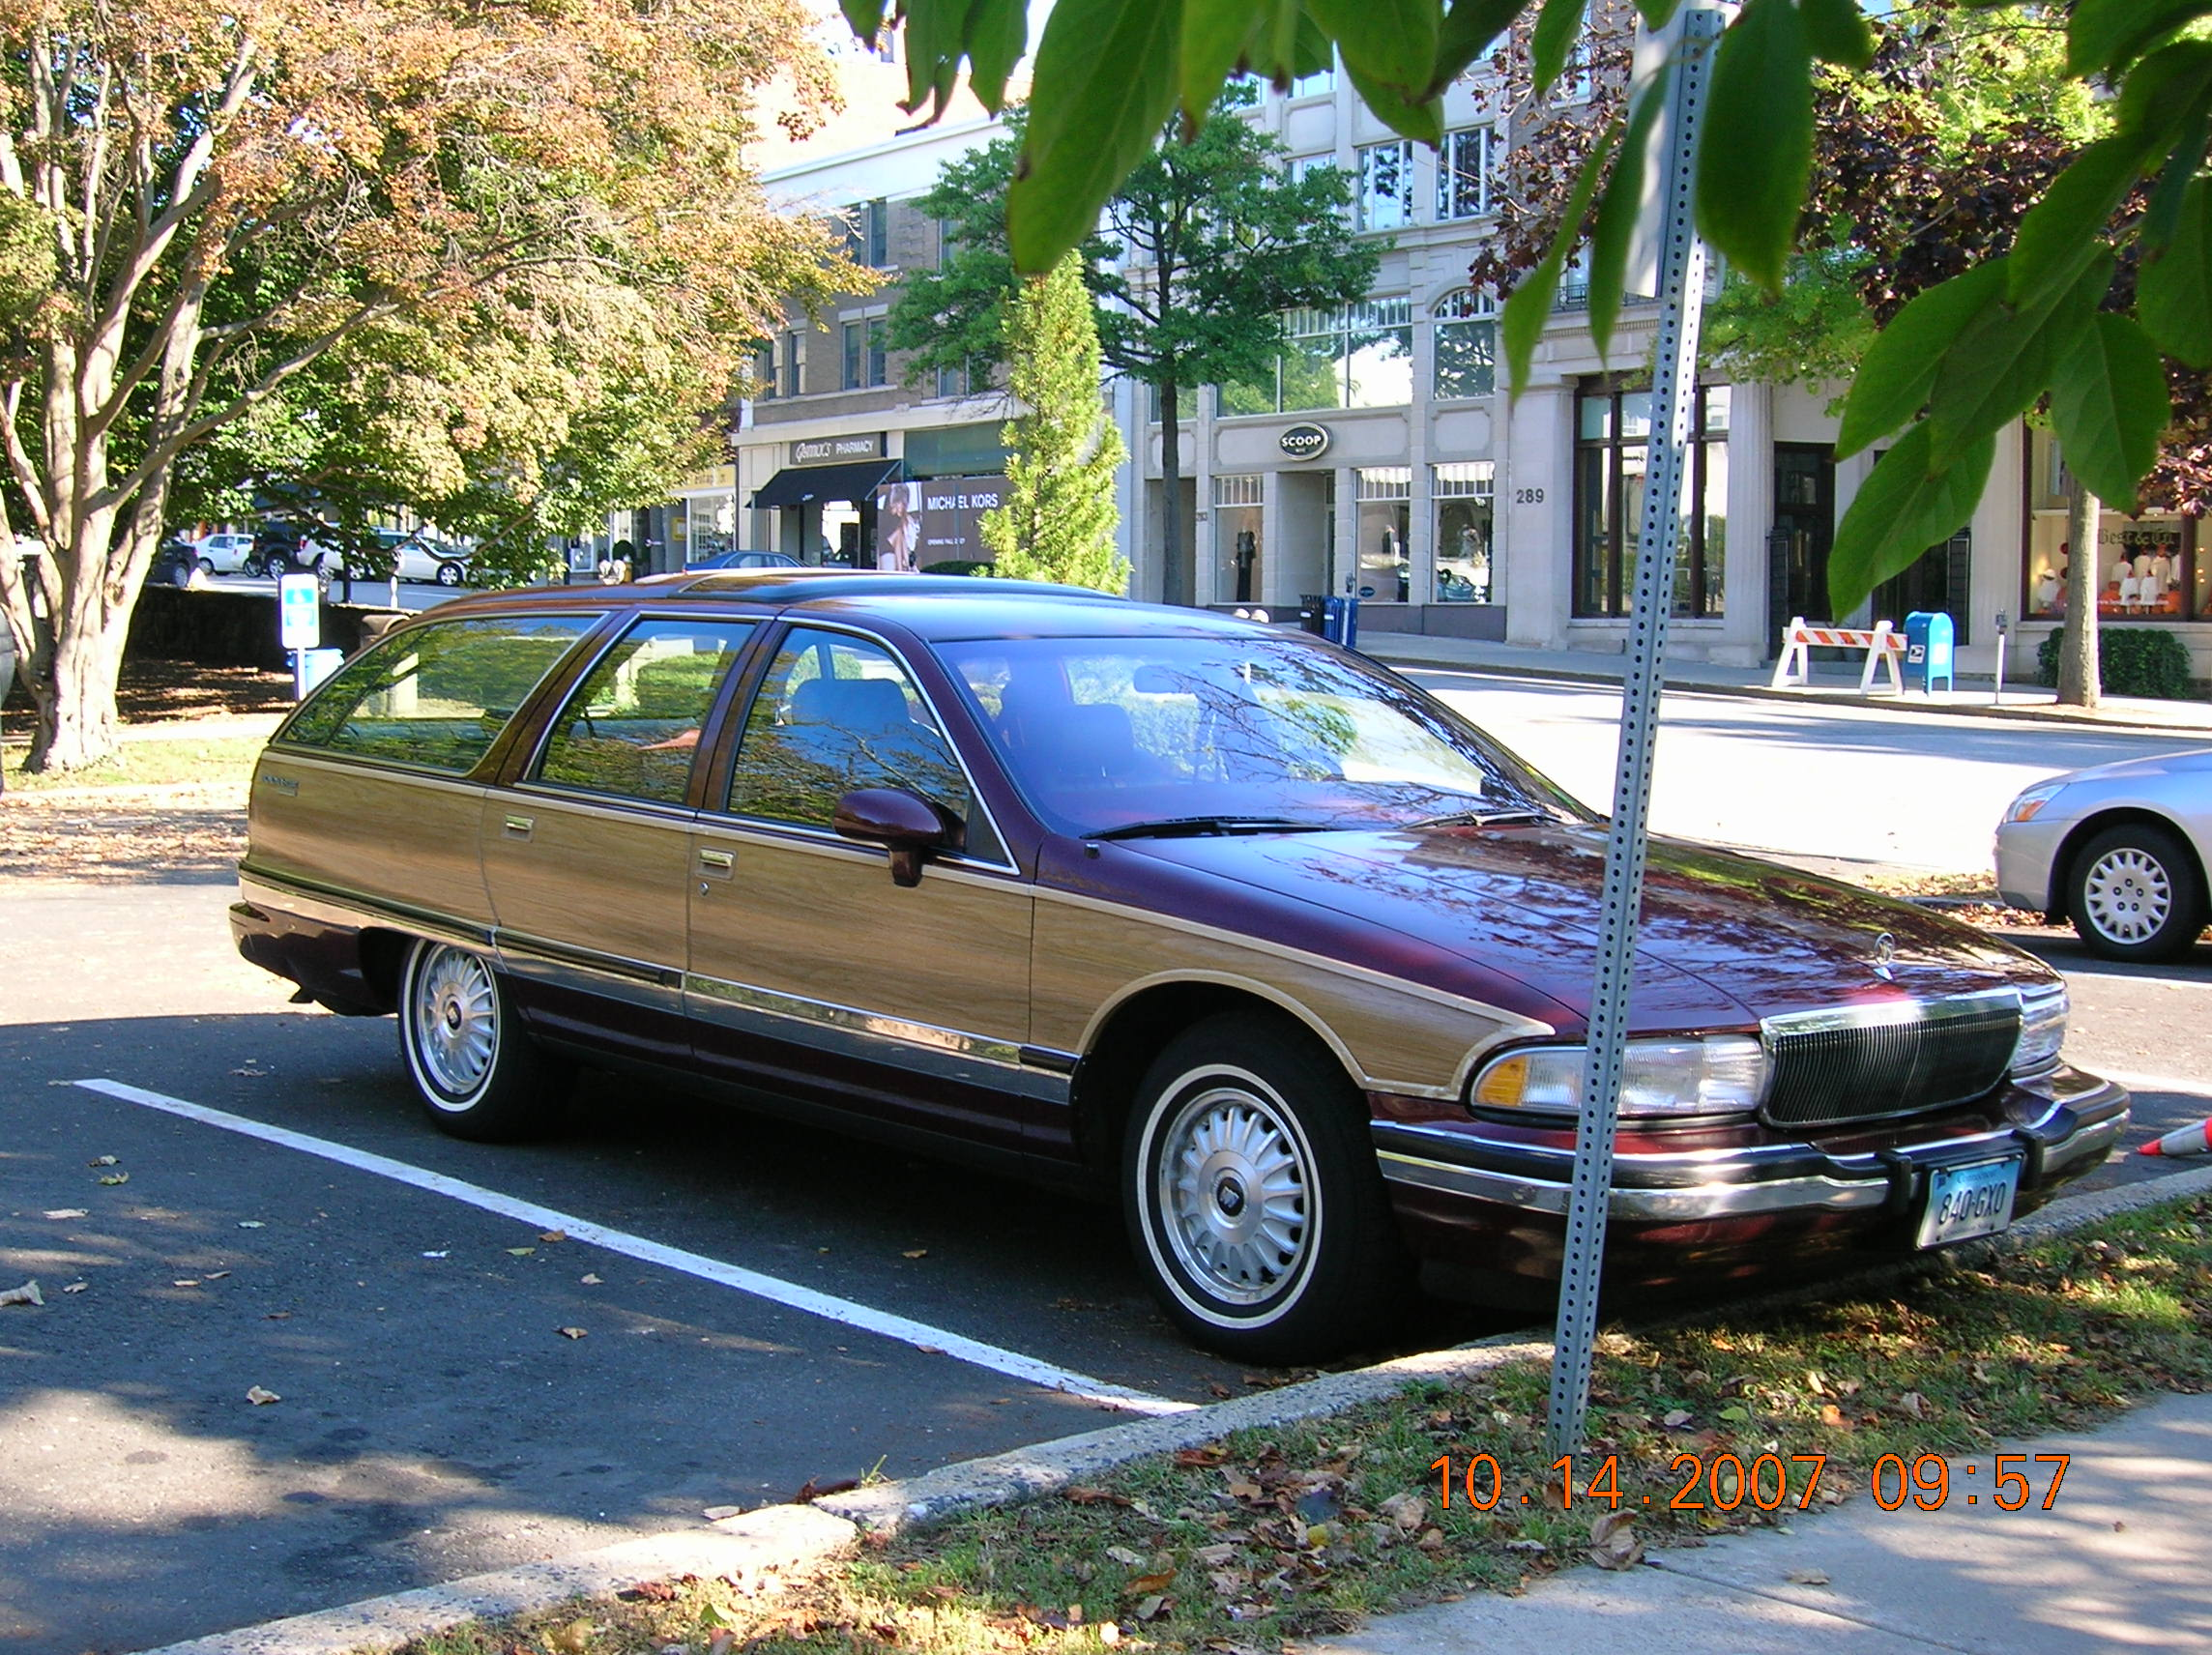 michael scott 1992 buick roadmaster station wagon. Black Bedroom Furniture Sets. Home Design Ideas